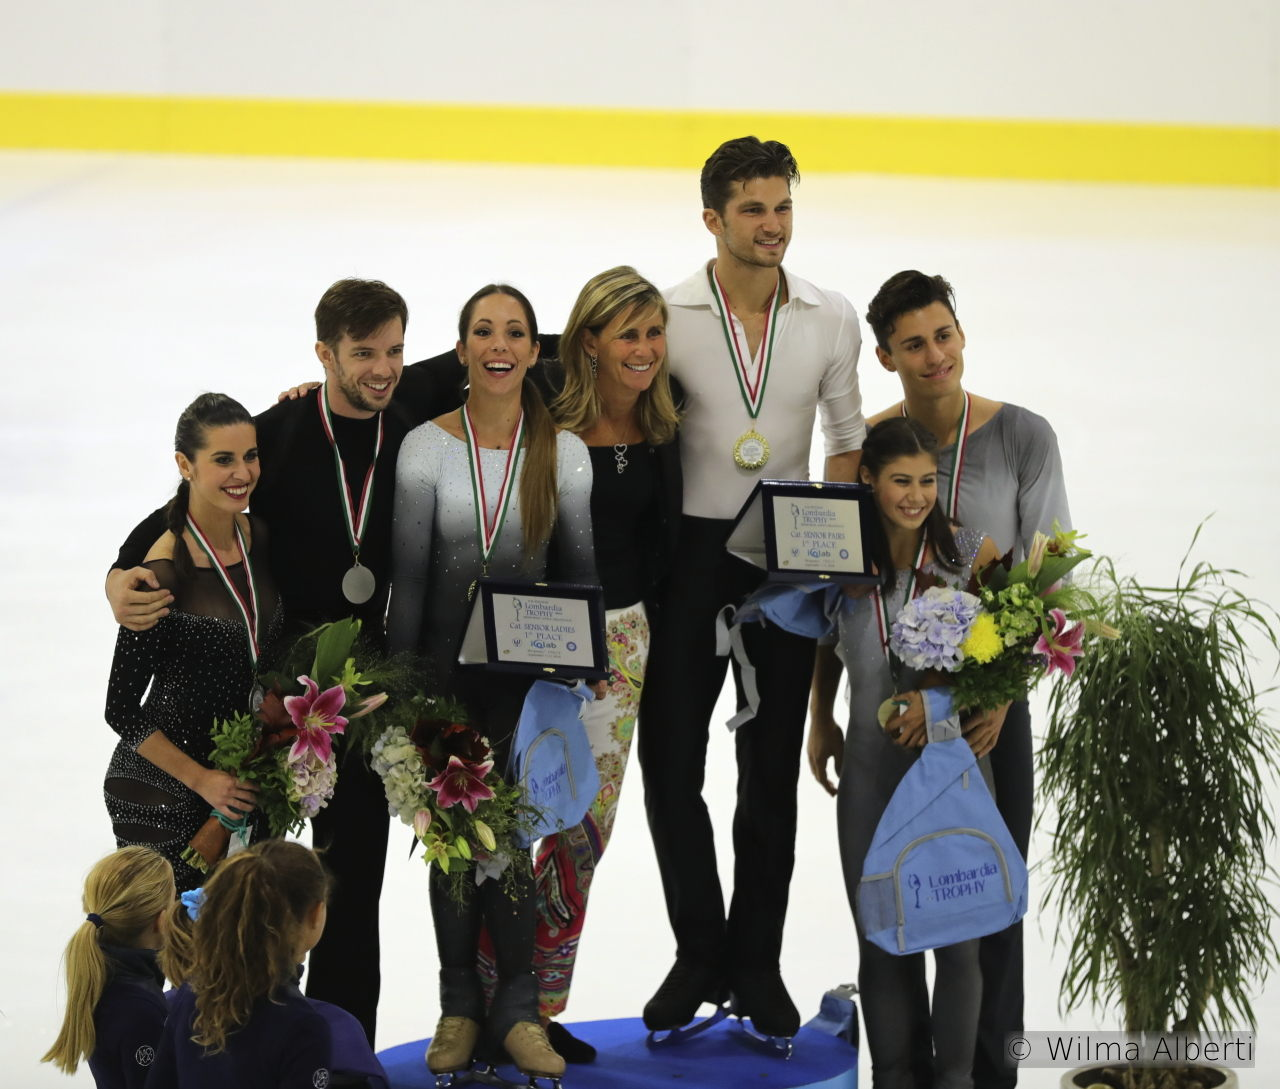 The podium in the pairs event, at this year's edition of Lombardia Trophy; the joy, the enthusiasm are more than obvious